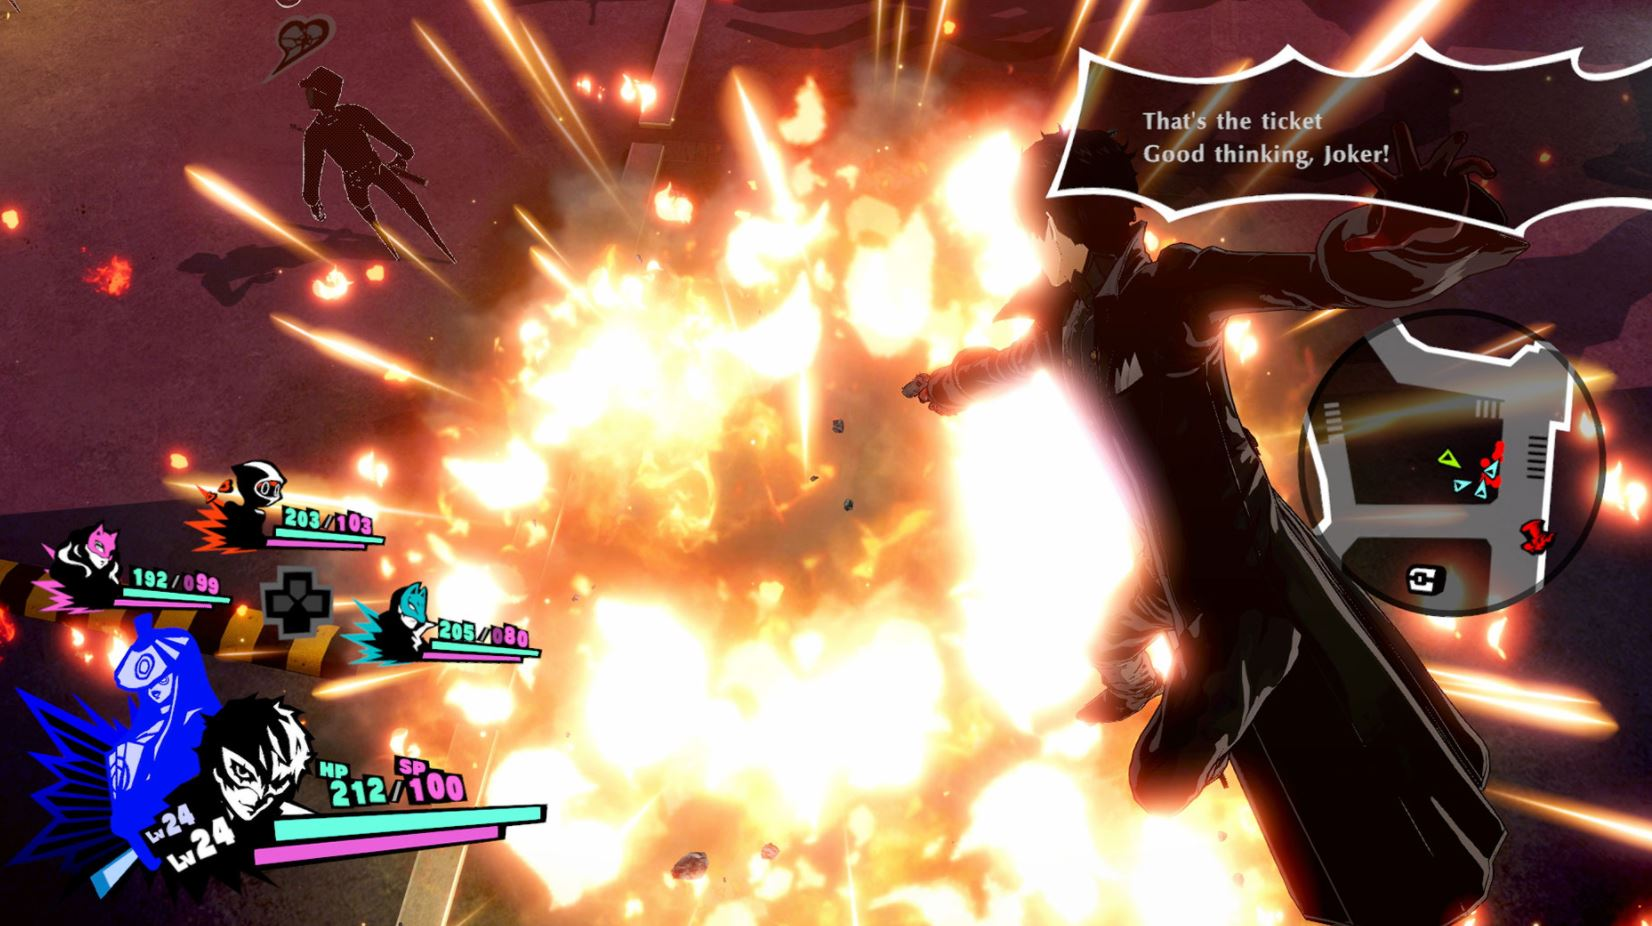 persona-5-strikers-hands-on-preview-ps4-personas-style-and-gameplay-translated-excellently-to-a-new-genre-3